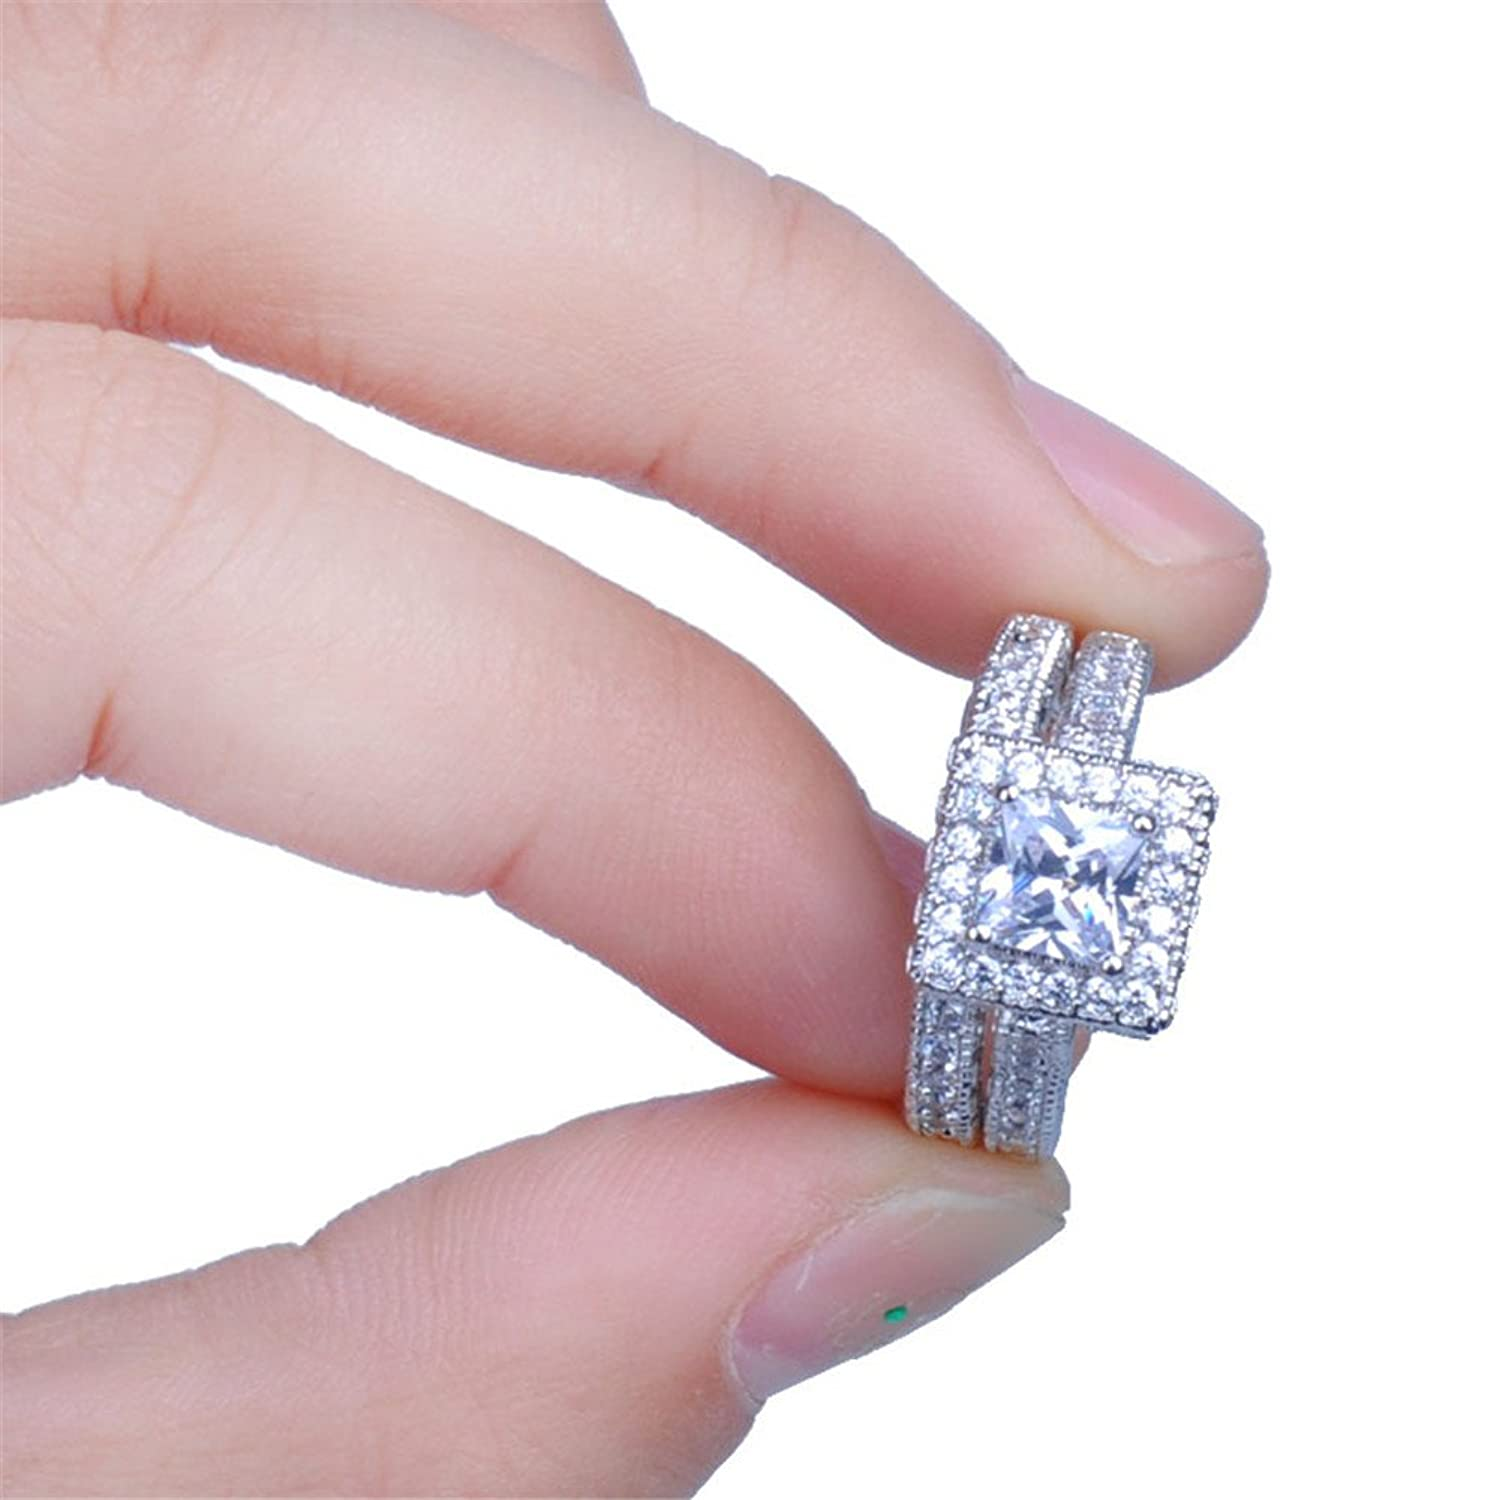 Amazon.com: JunXin jewelry 66MM White Gold Cushion Cut Diamond ...